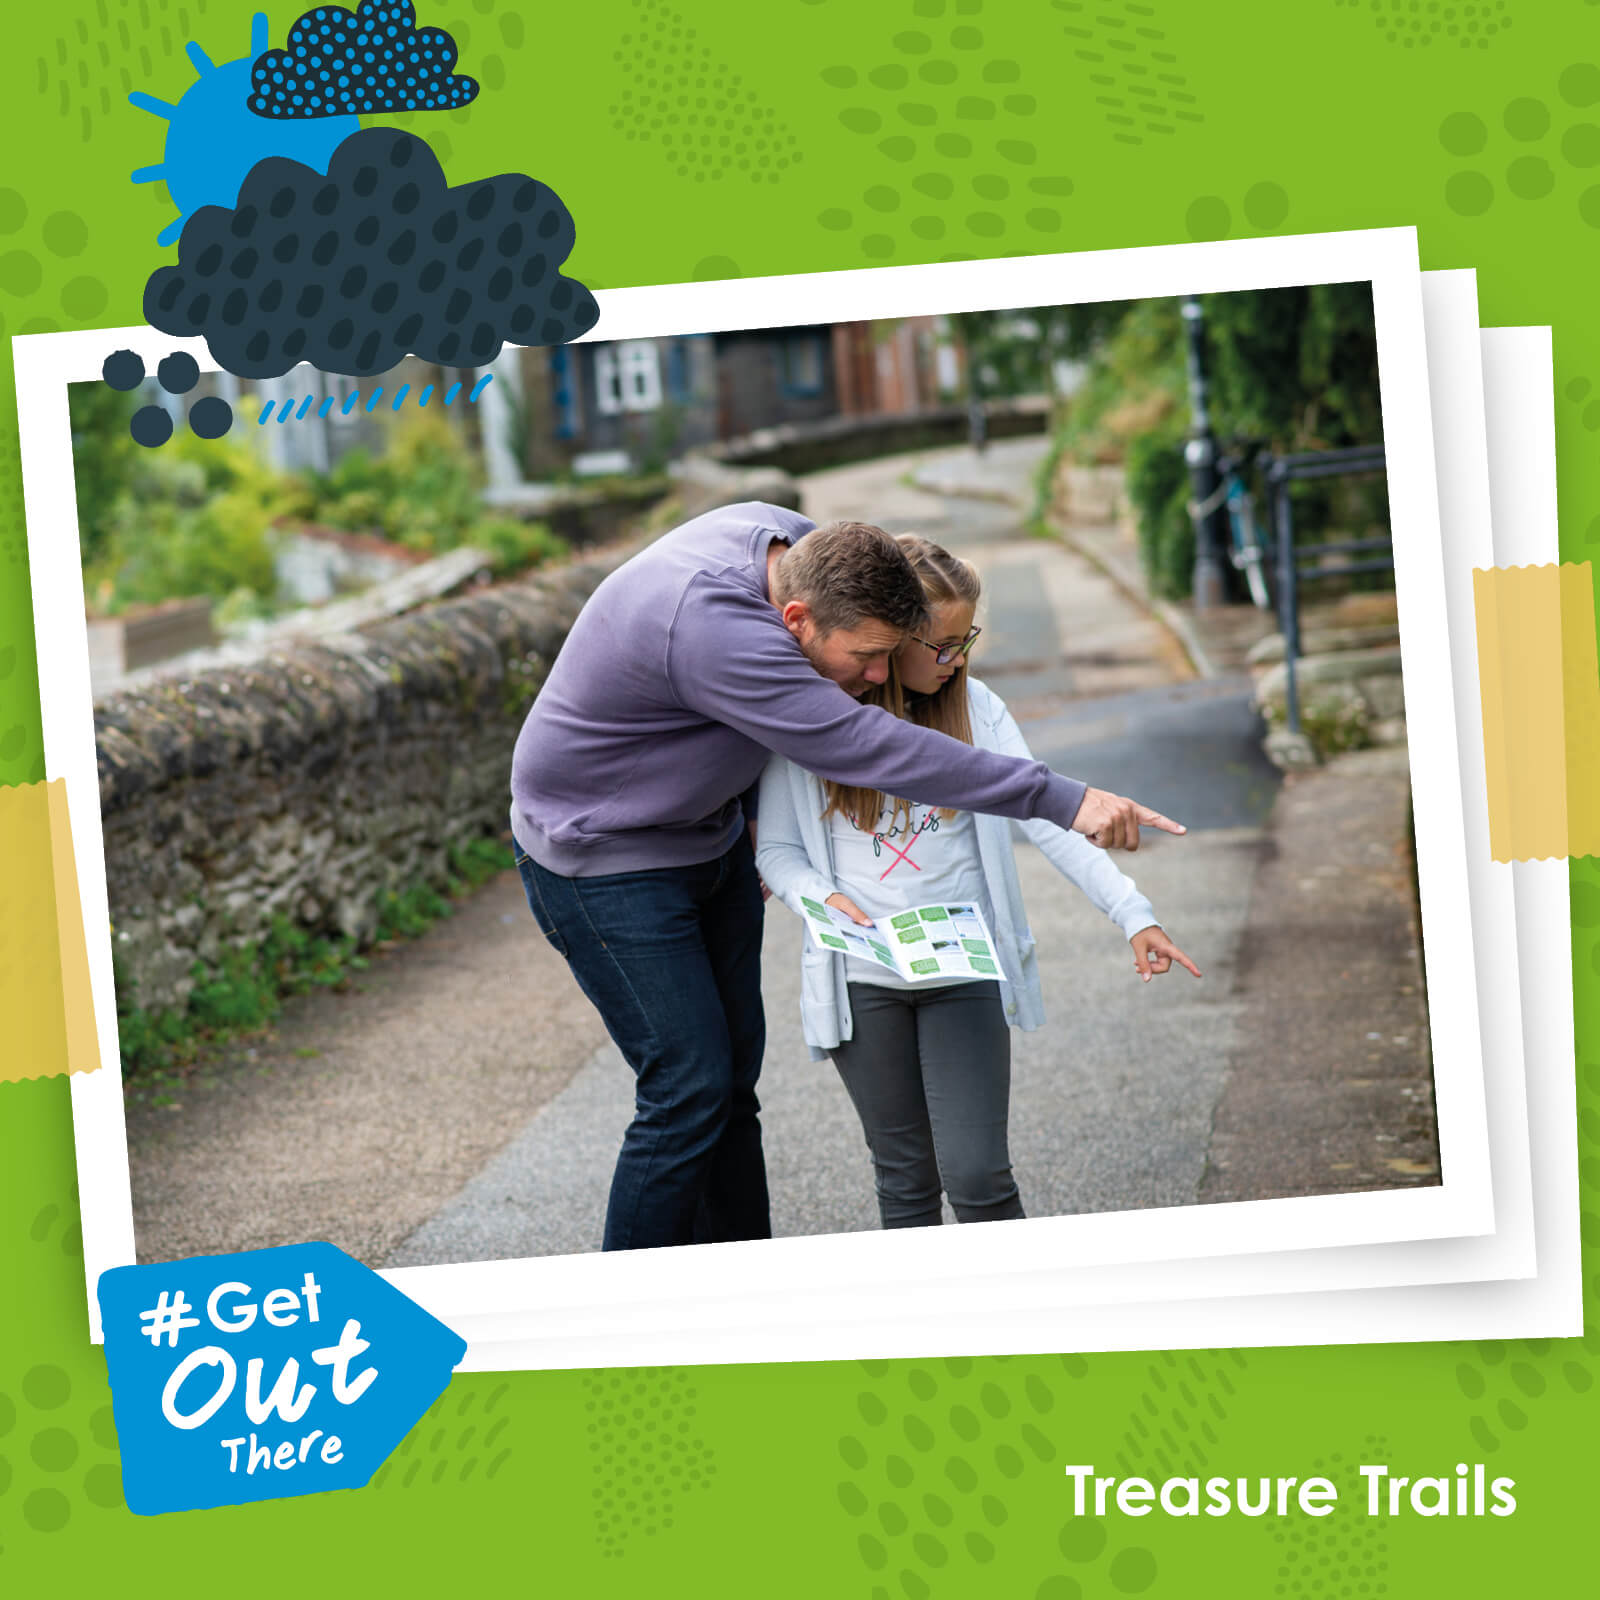 Get Out There with Treasure Trails